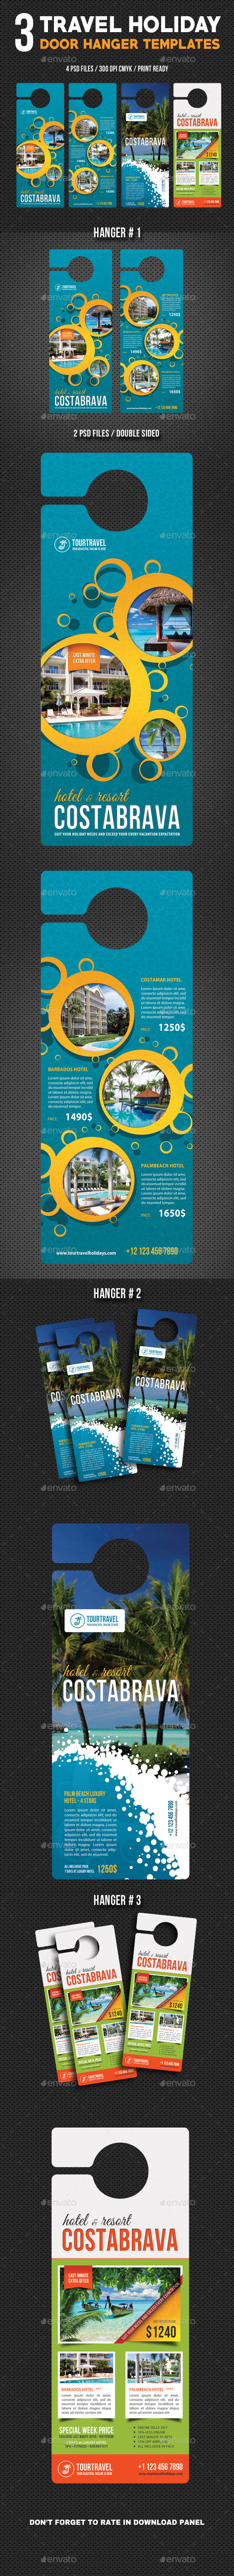 3 Travel Holiday Door Hanger Bundle 02 - Miscellaneous Print Templates